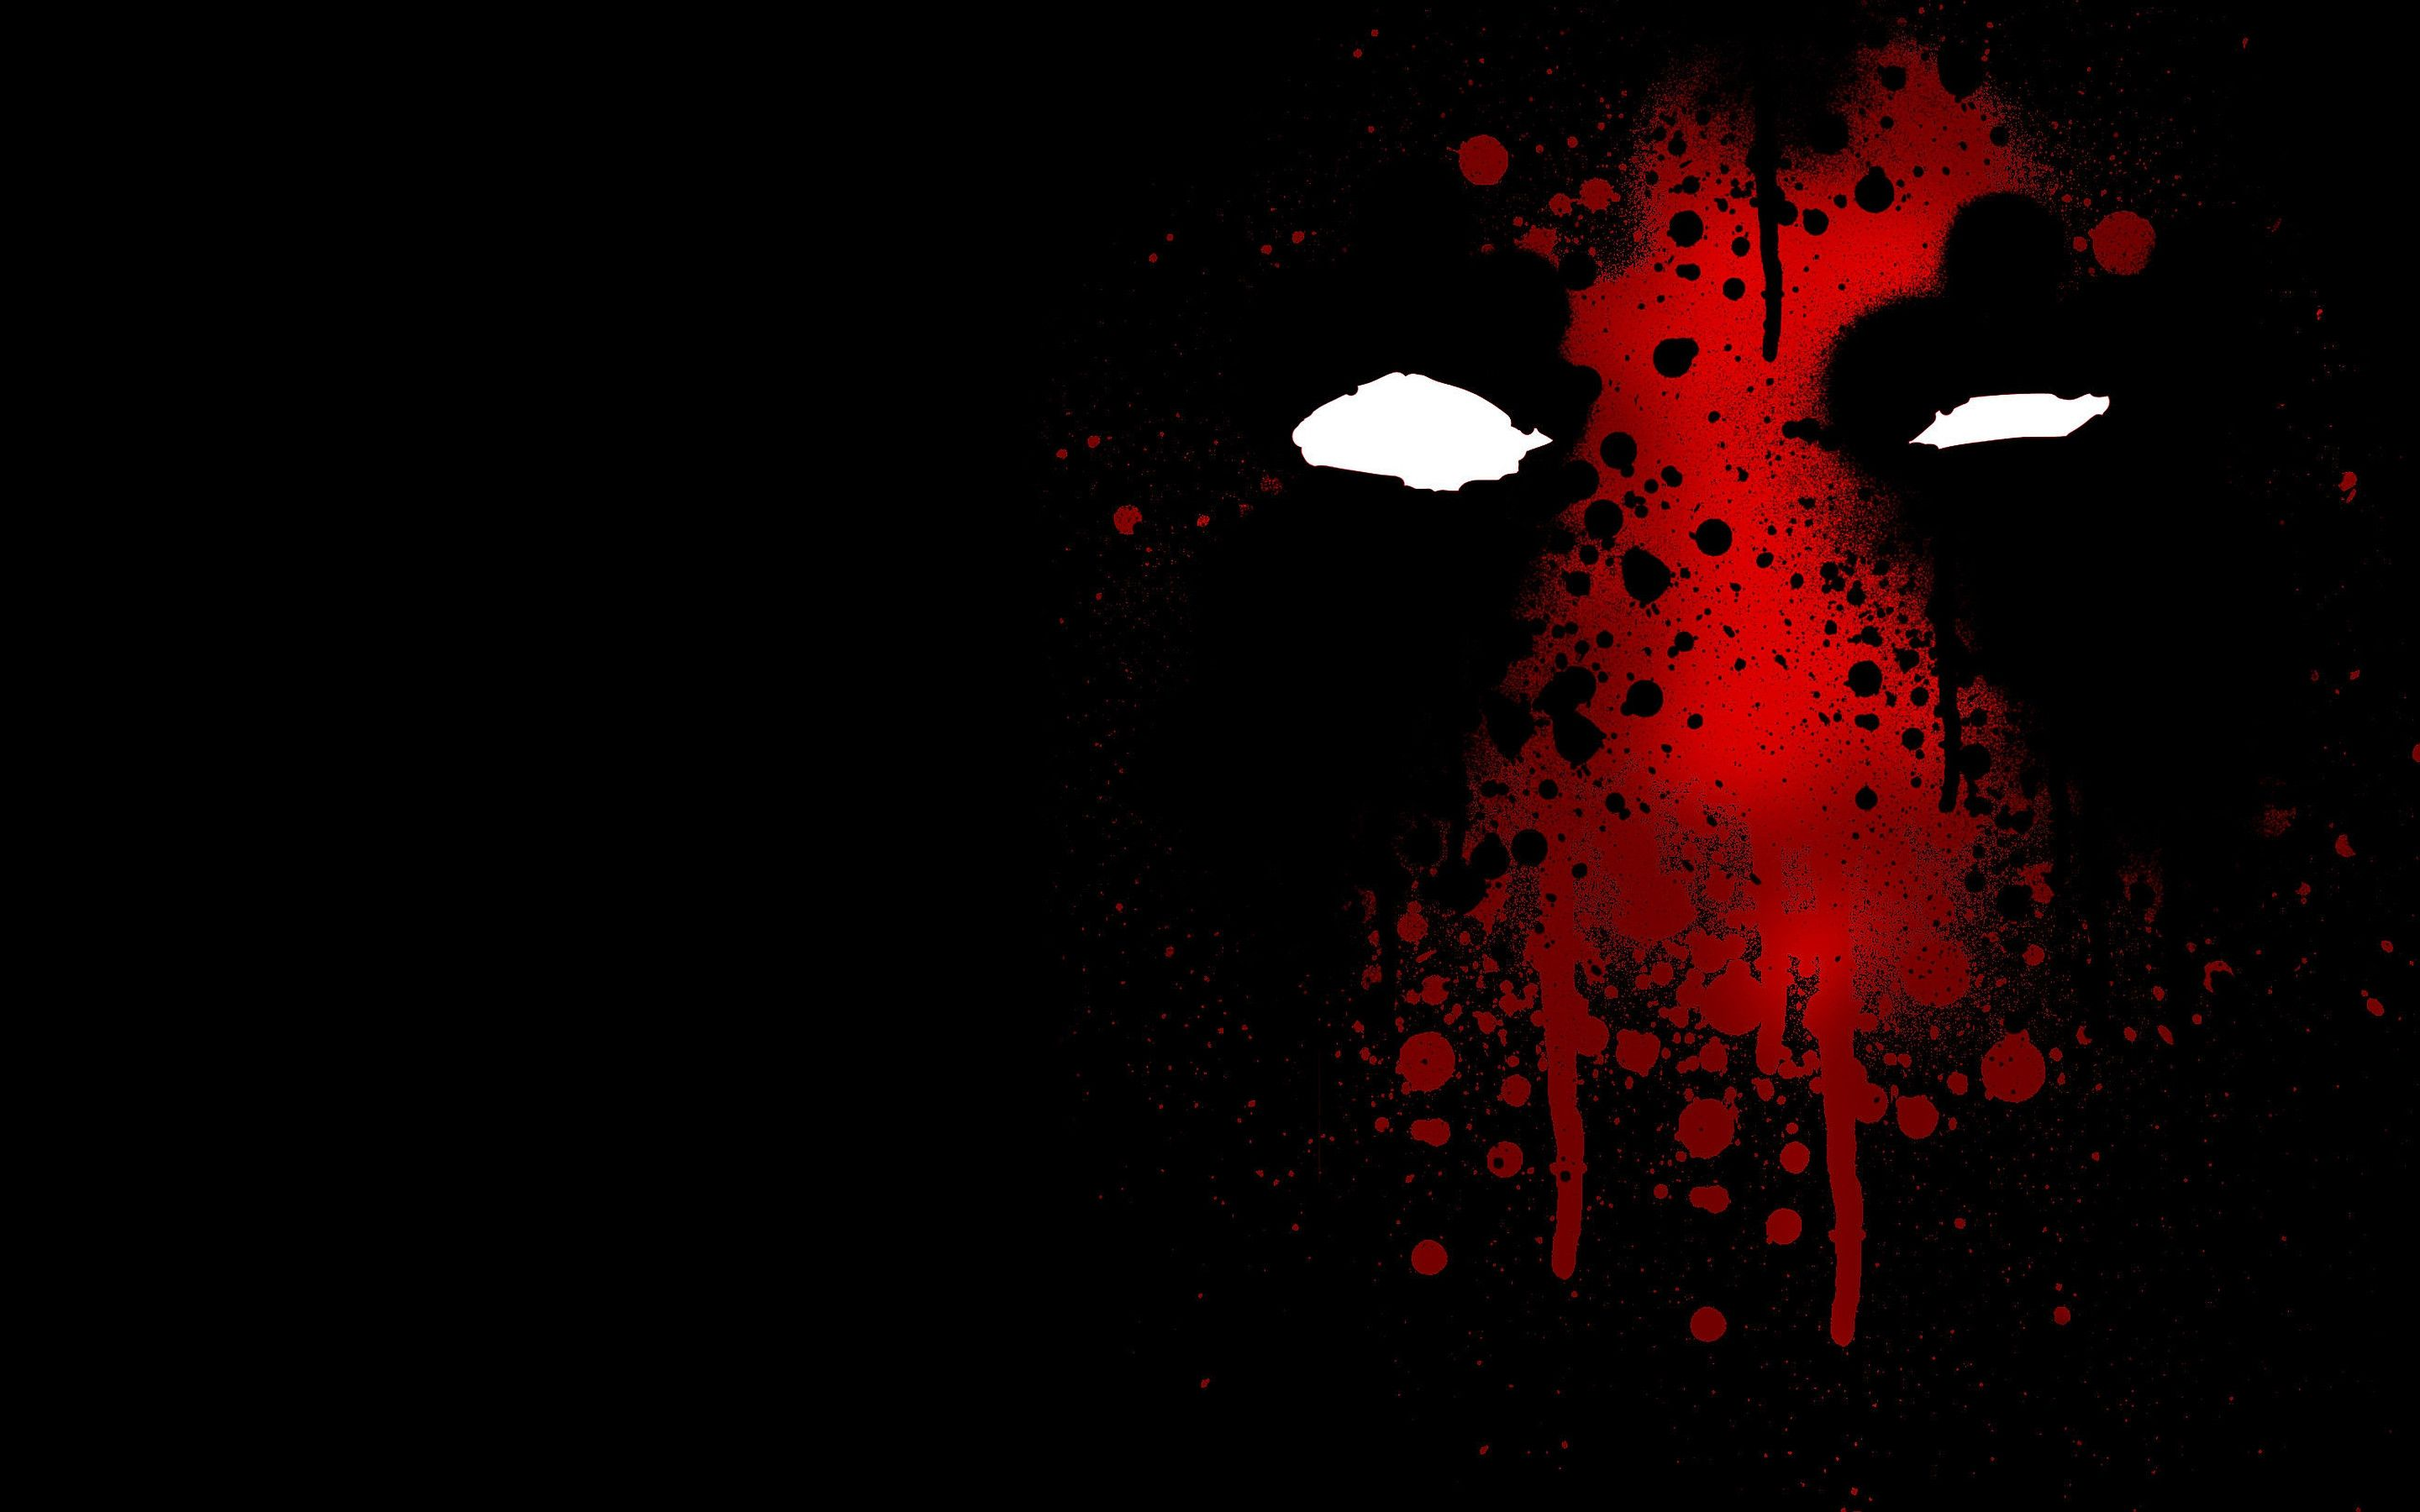 deadpool-mask-drawing-wallpaper